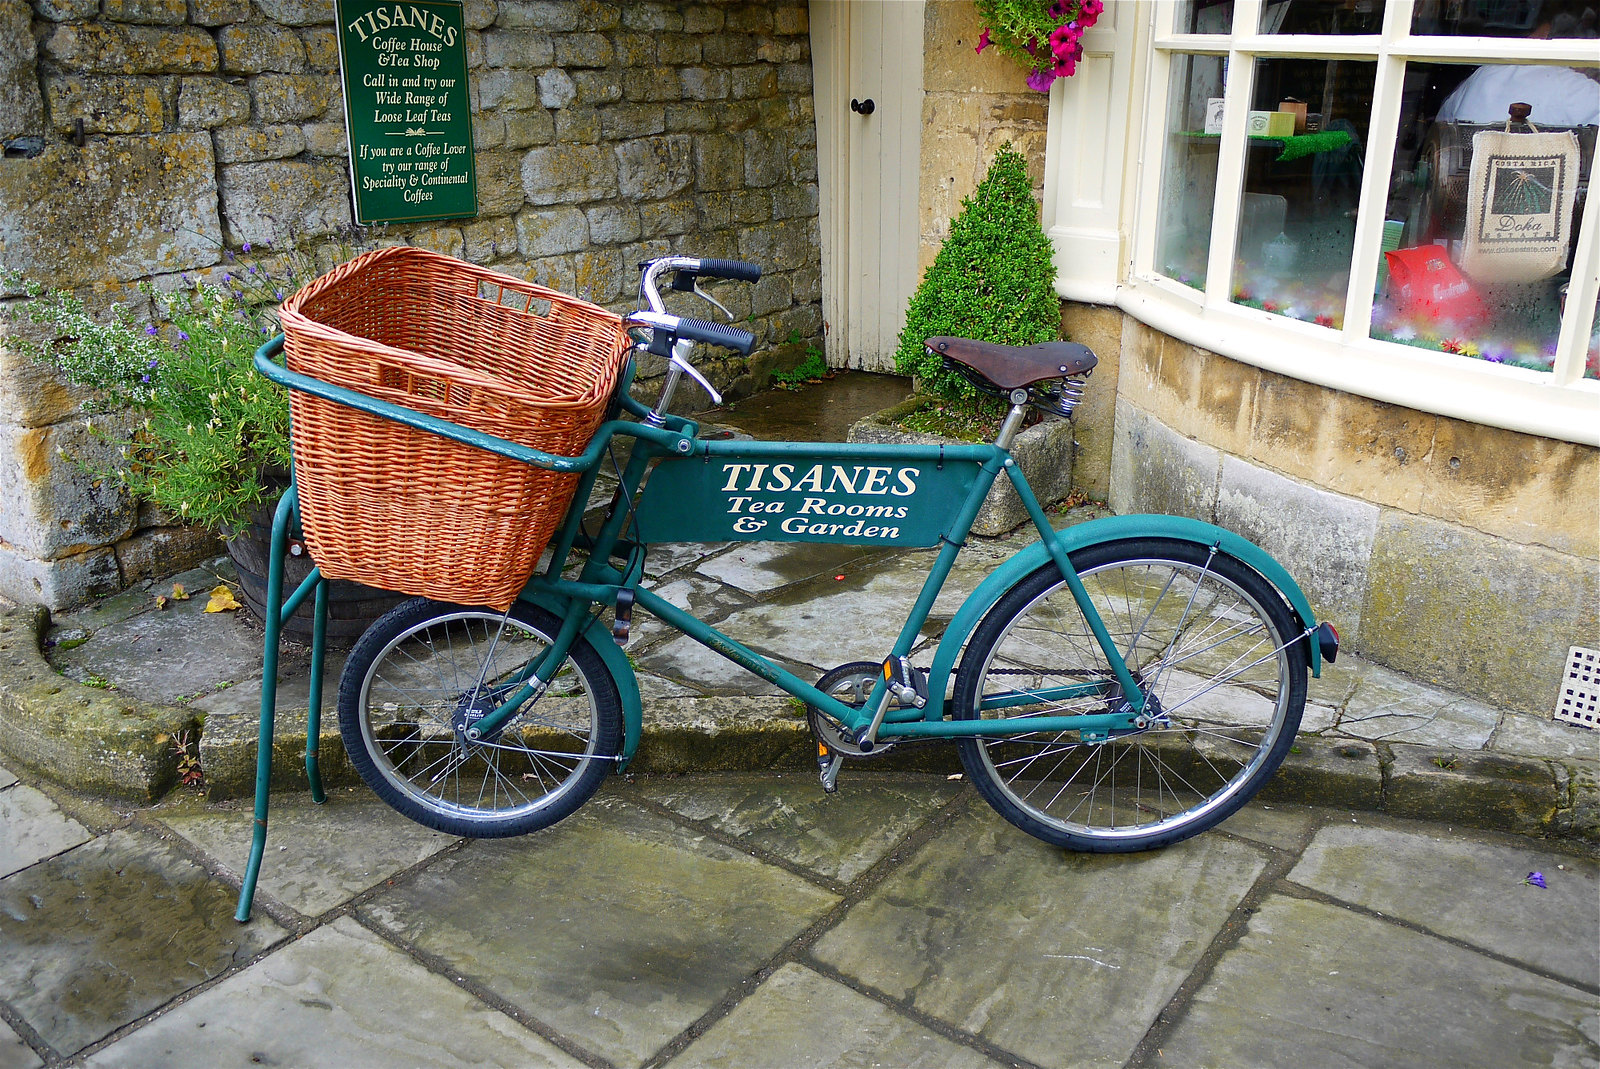 Delivery bicycle at Tisanes Tea Room in Broadway, Worcestershire. Credit Mick